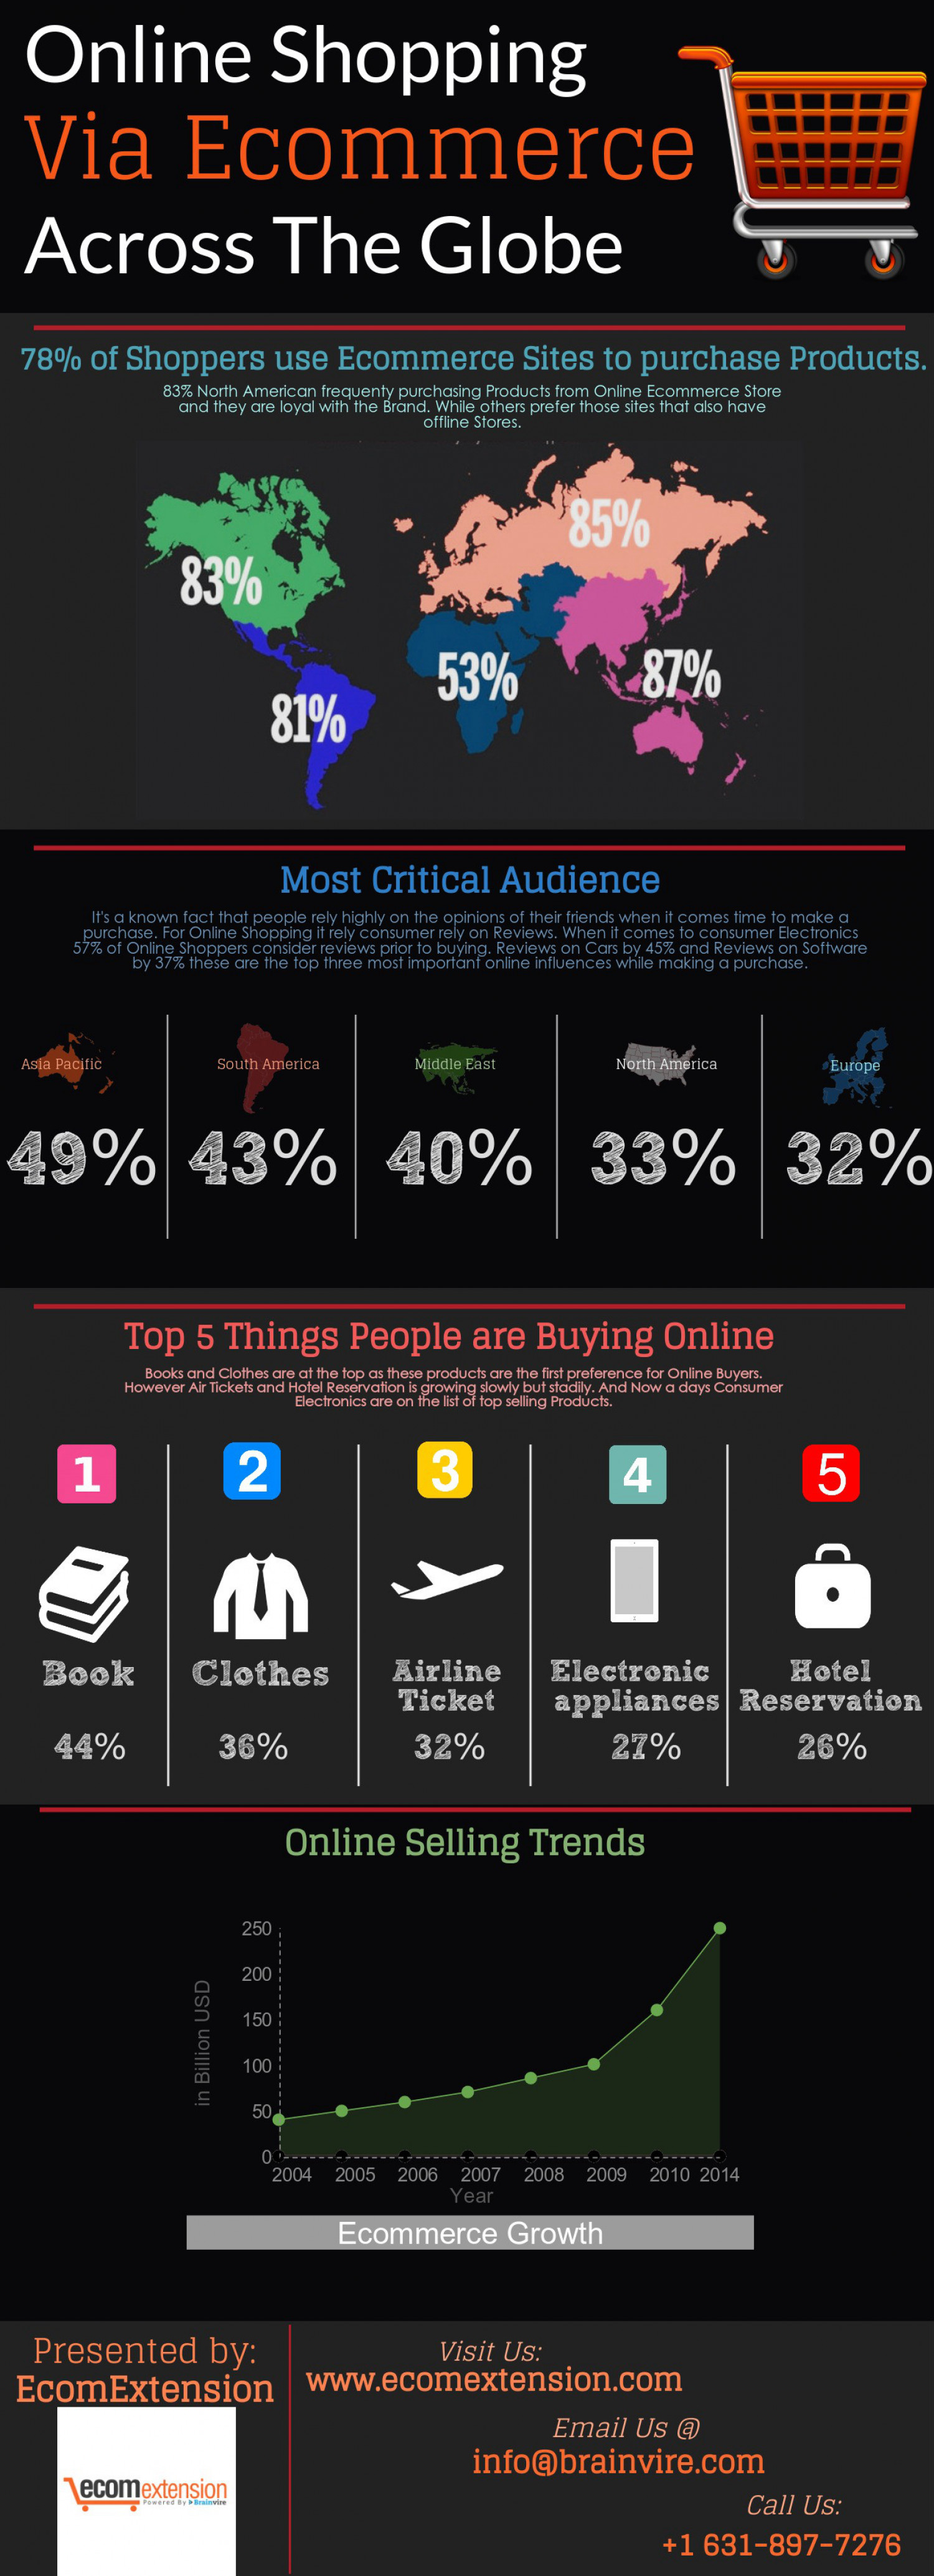 Ecommerce Growth Infographic